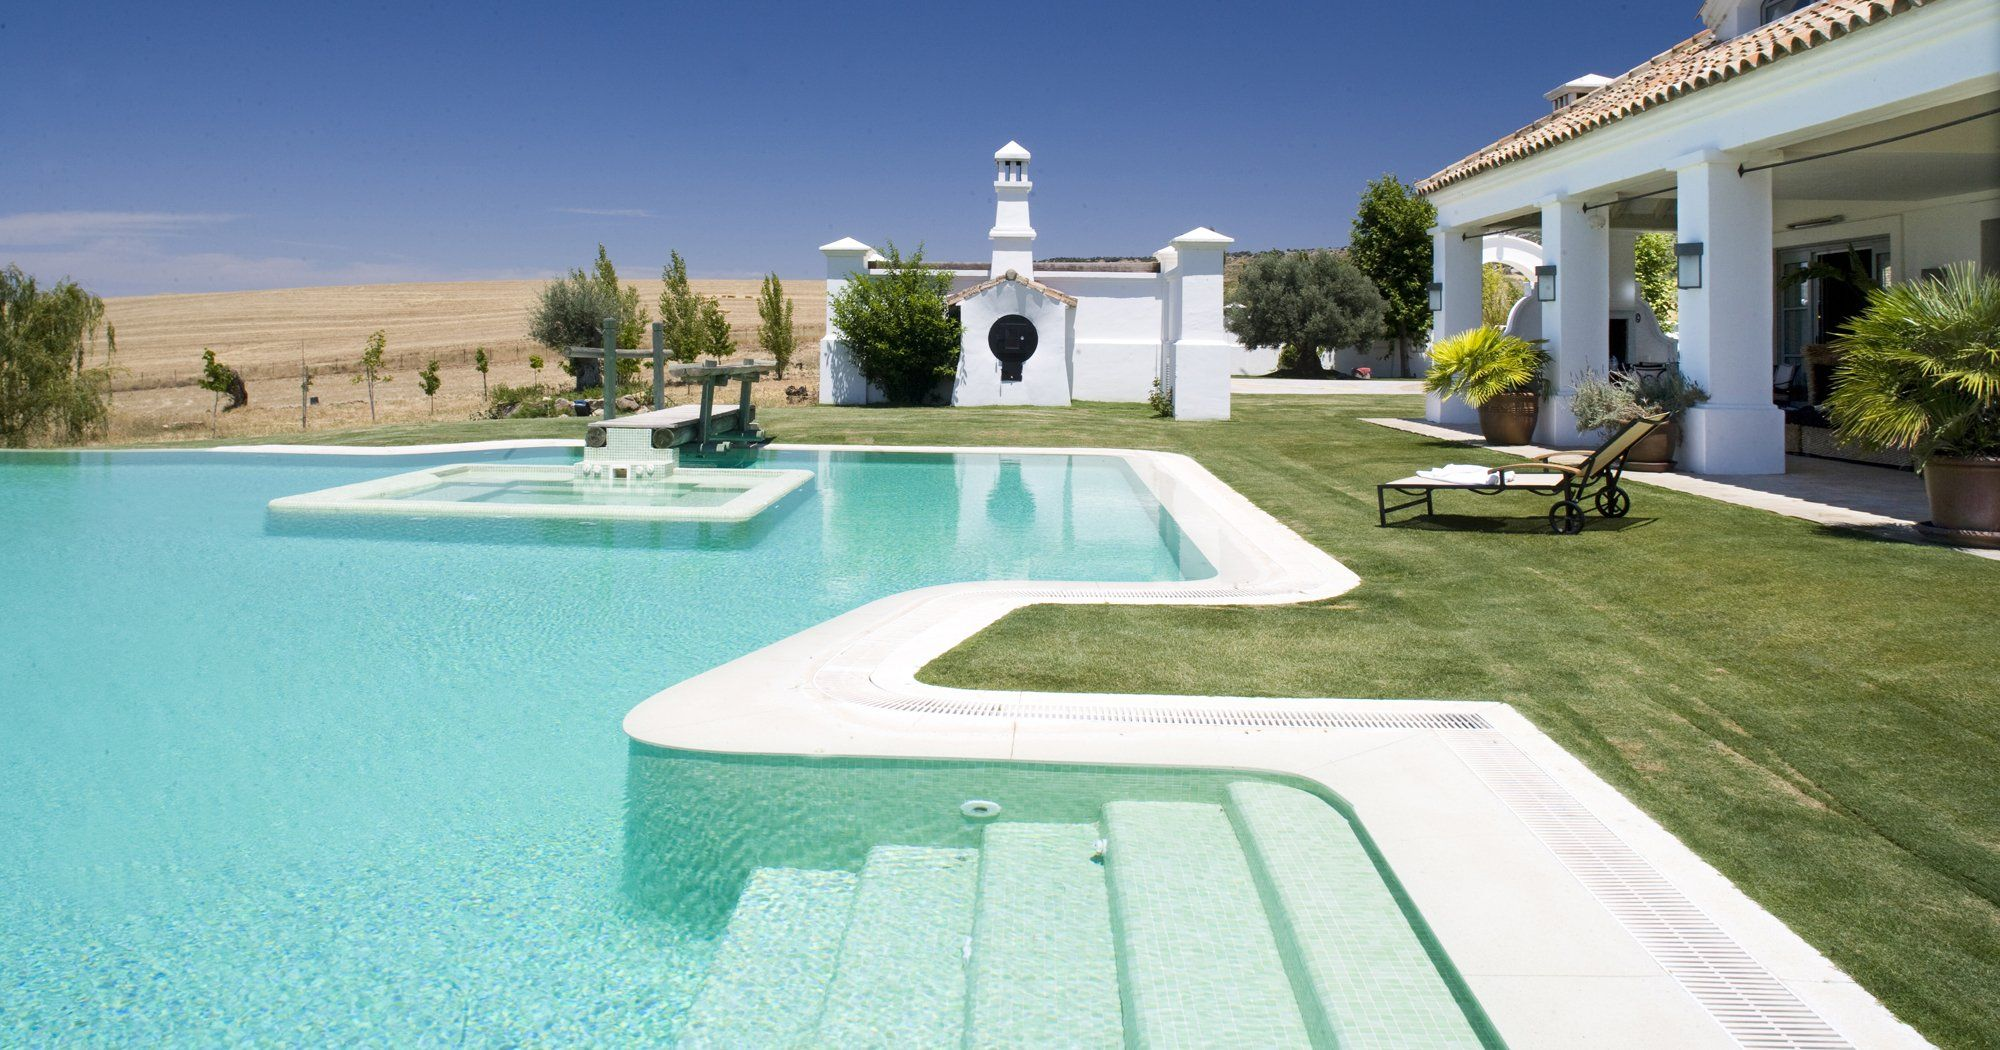 luxury villa swimming pool ronda andalucia